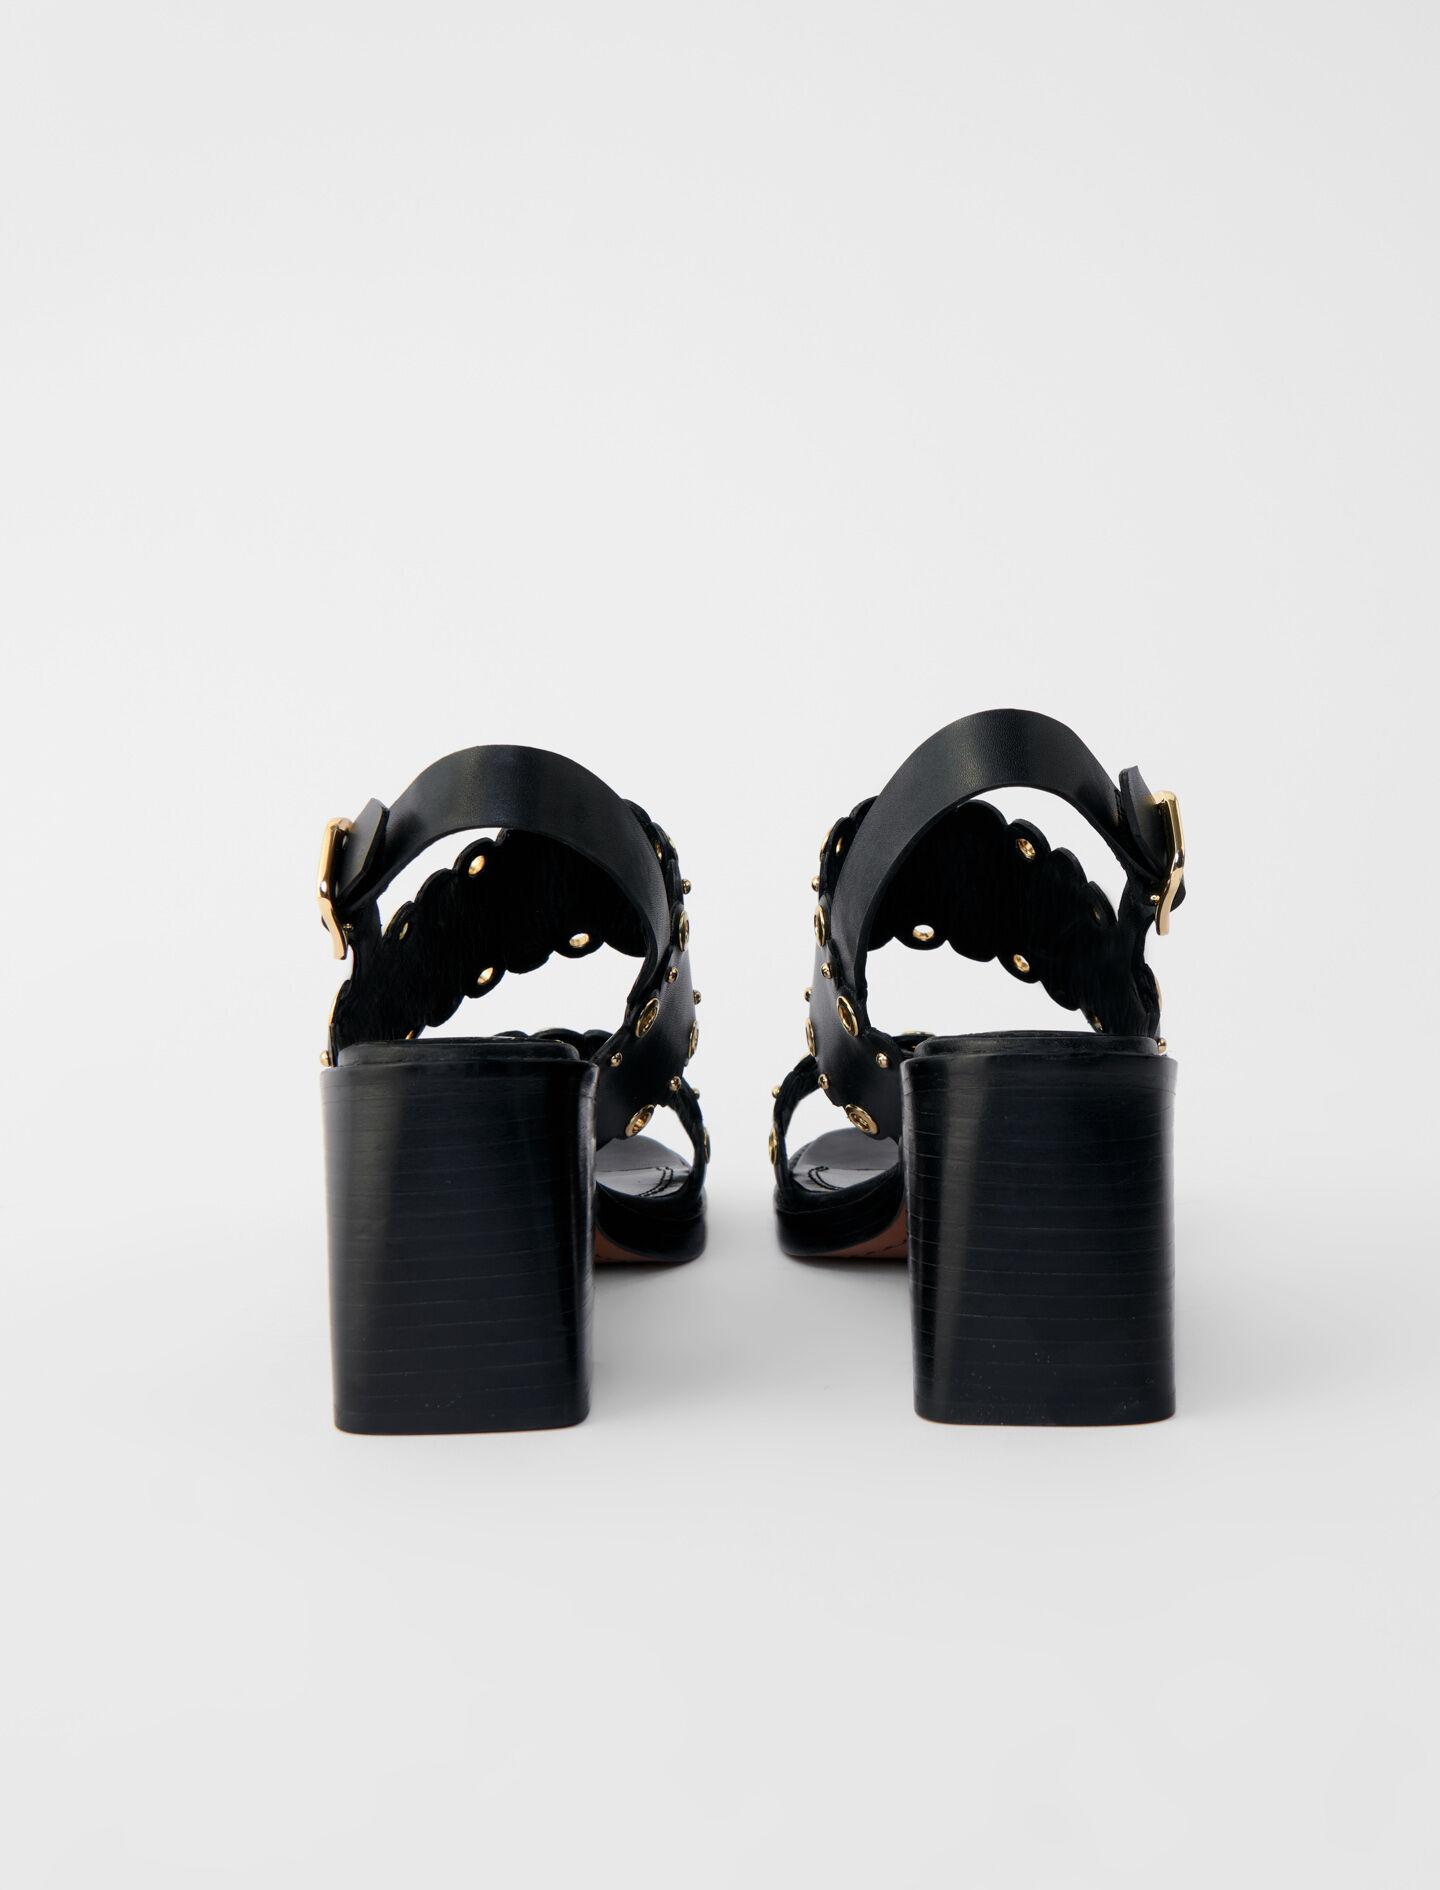 HIGH-HEELED LEATHER SANDALS WITH EYELETS 4